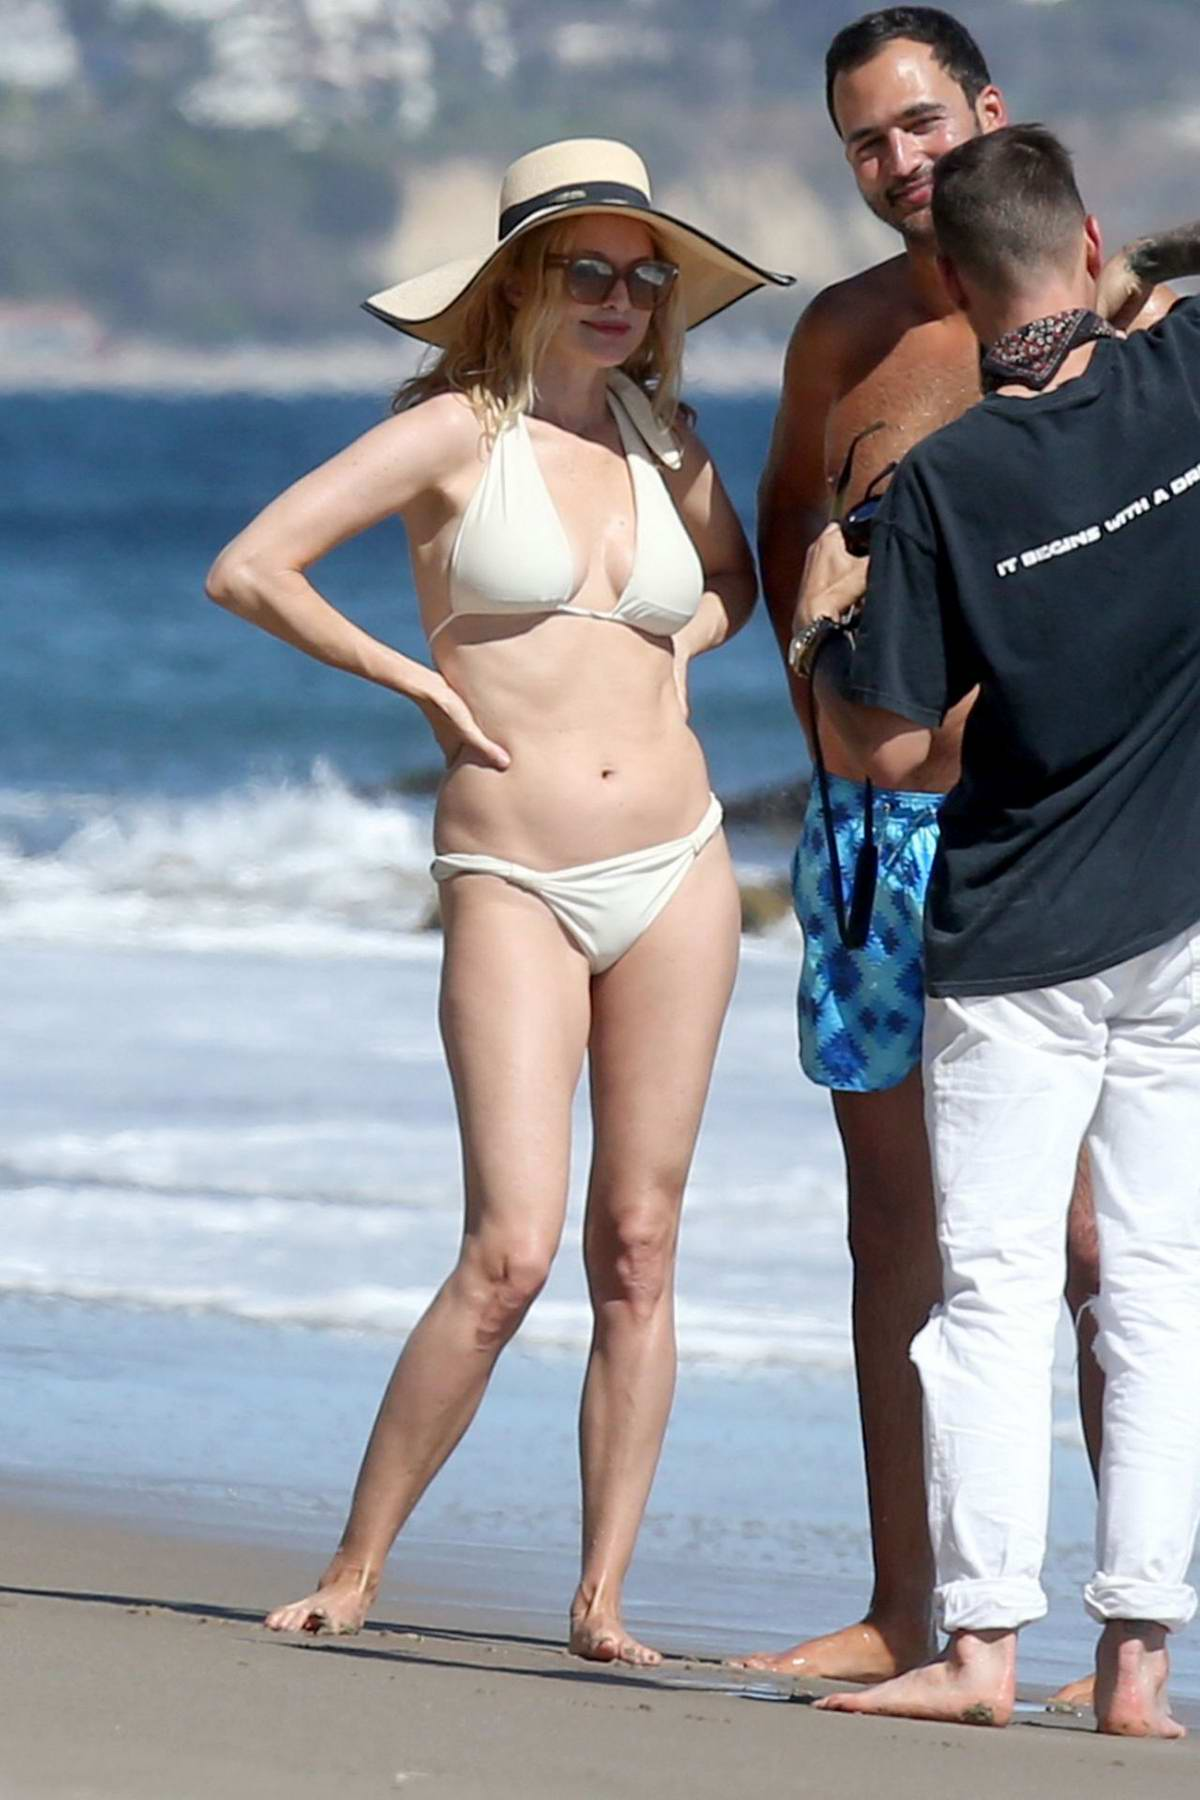 Heather Graham looks amazing in a white bikini as she hits the beach in Malibu, California